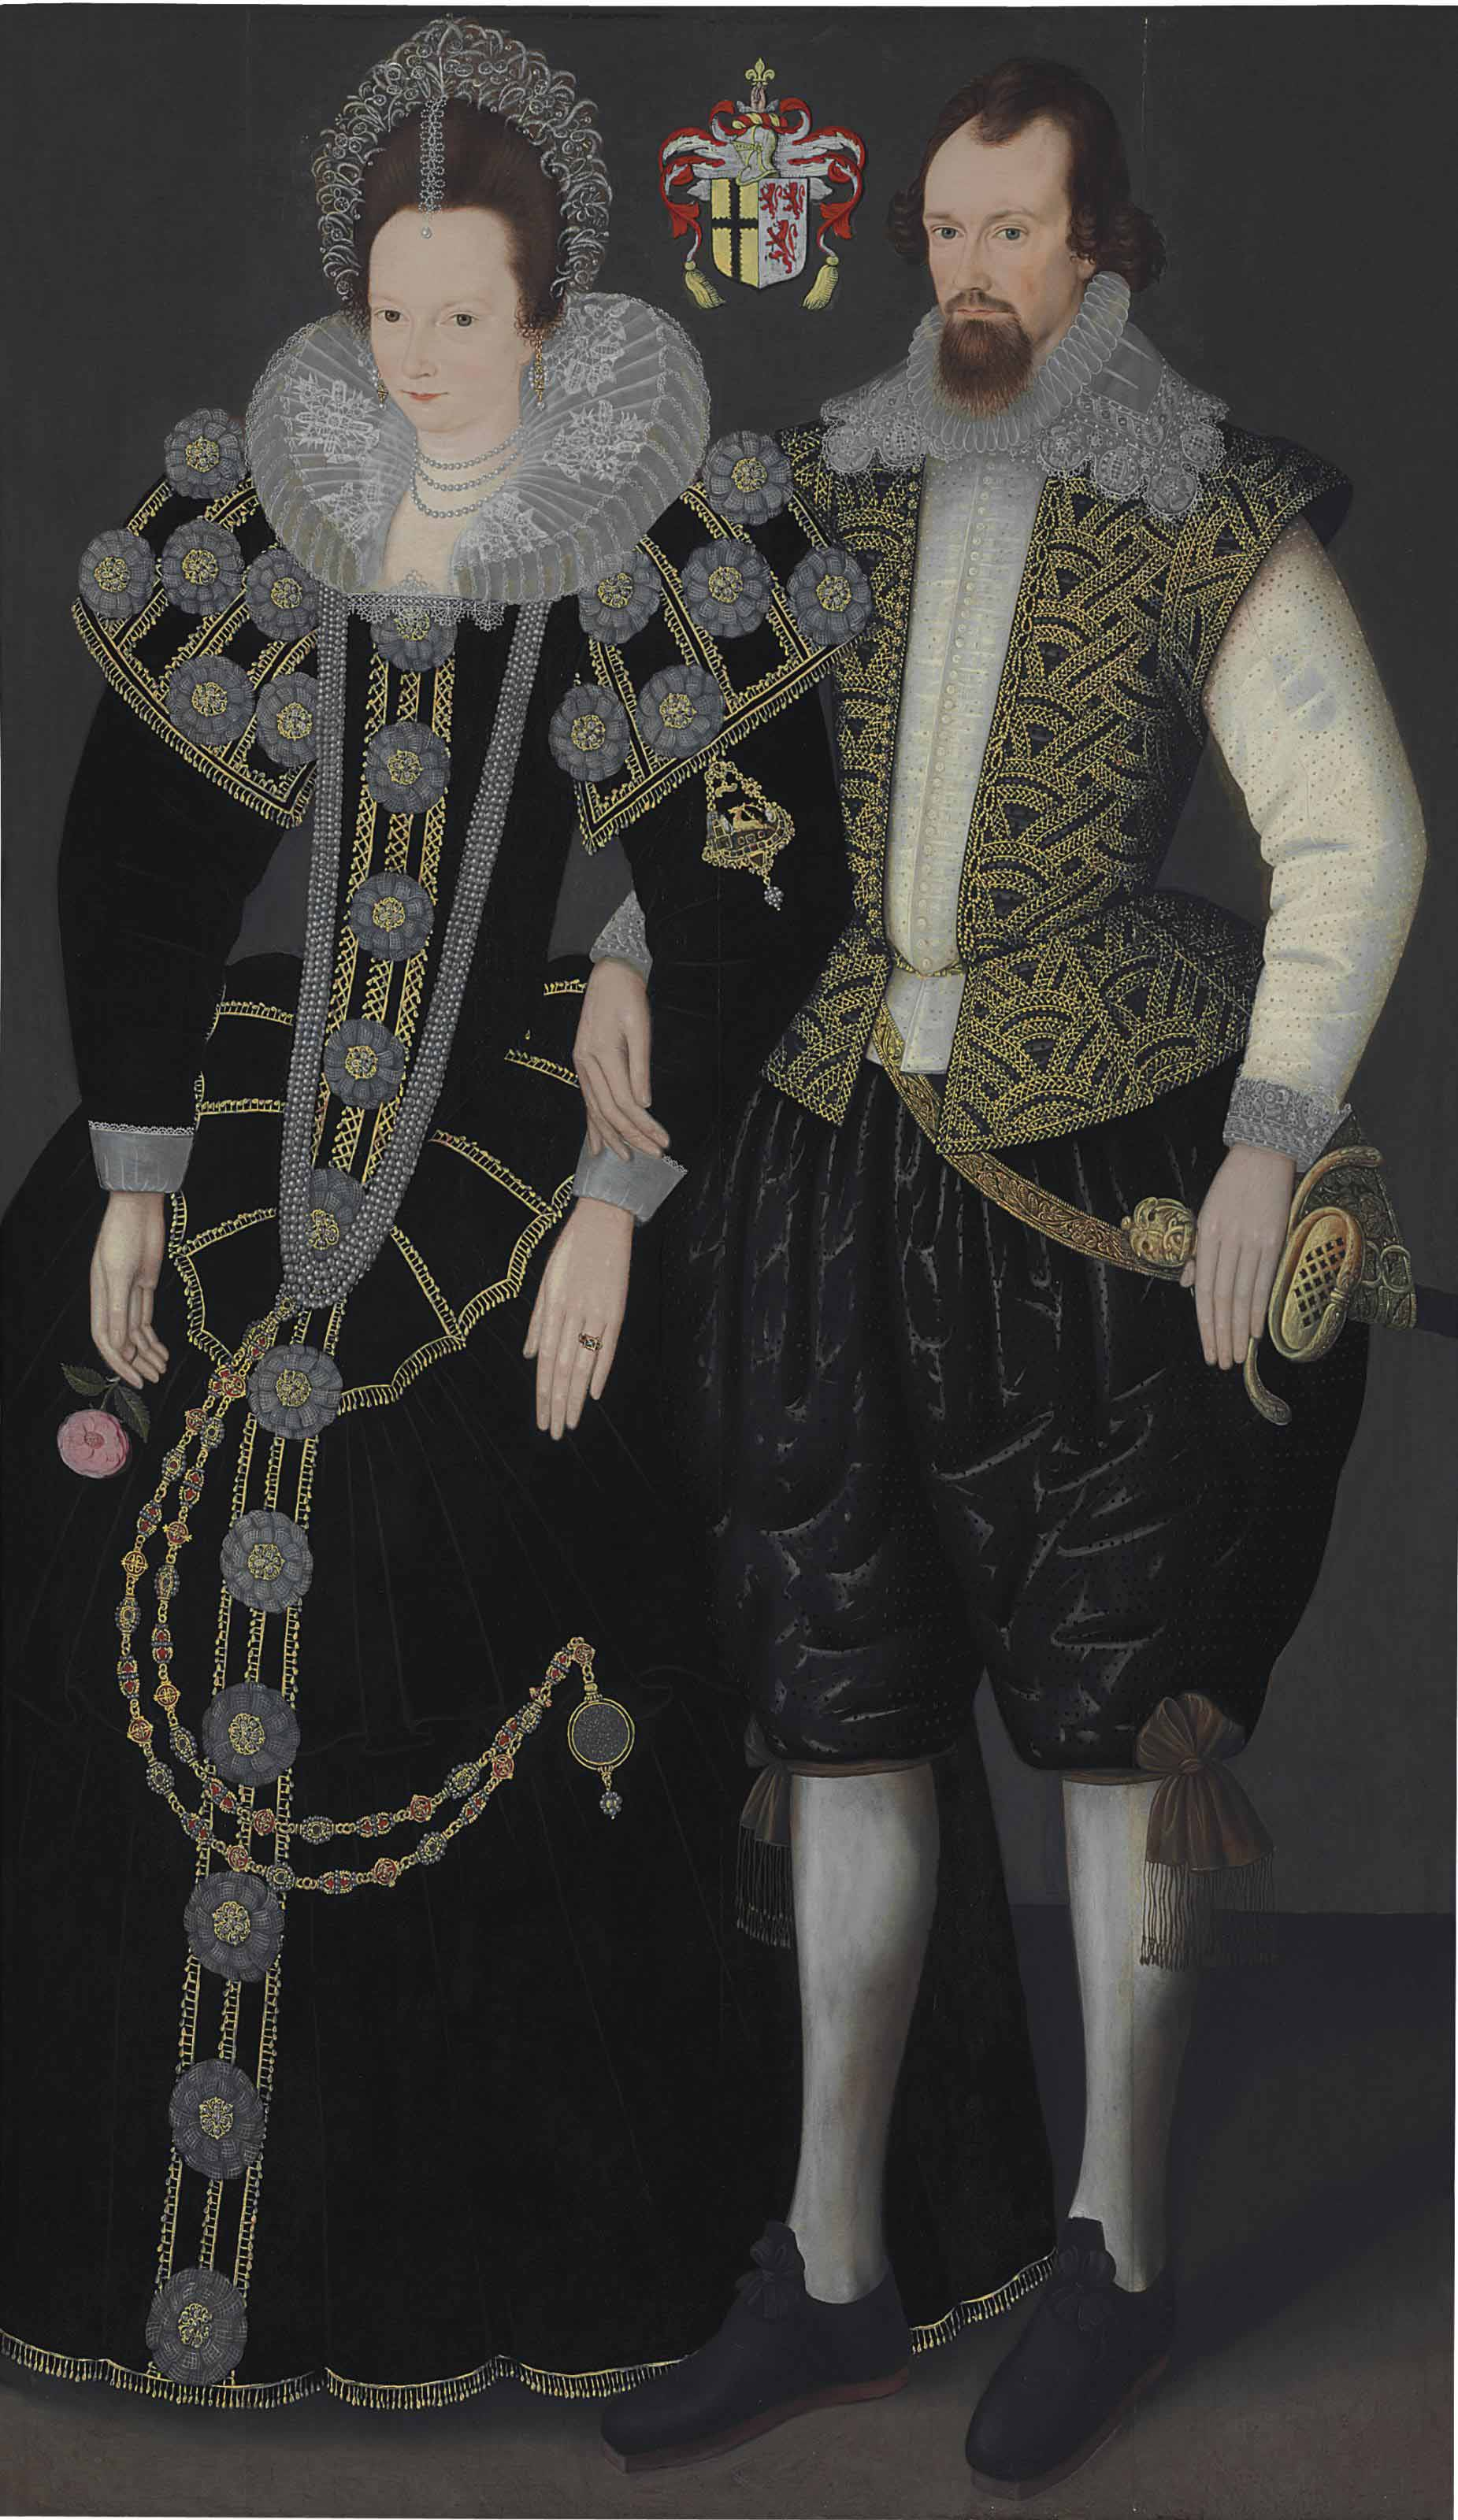 Double portrait of Sir Reginald (c.1564-1639) and Lady Mohun, full-length, the former in a black, richly embroidered jerkin and hose, and lace collar and ruff, holding a gilt-iron Rapier in an embroidered carrier in his left hand, the latter in a black dress and lace ruff, holding a rose in her right hand